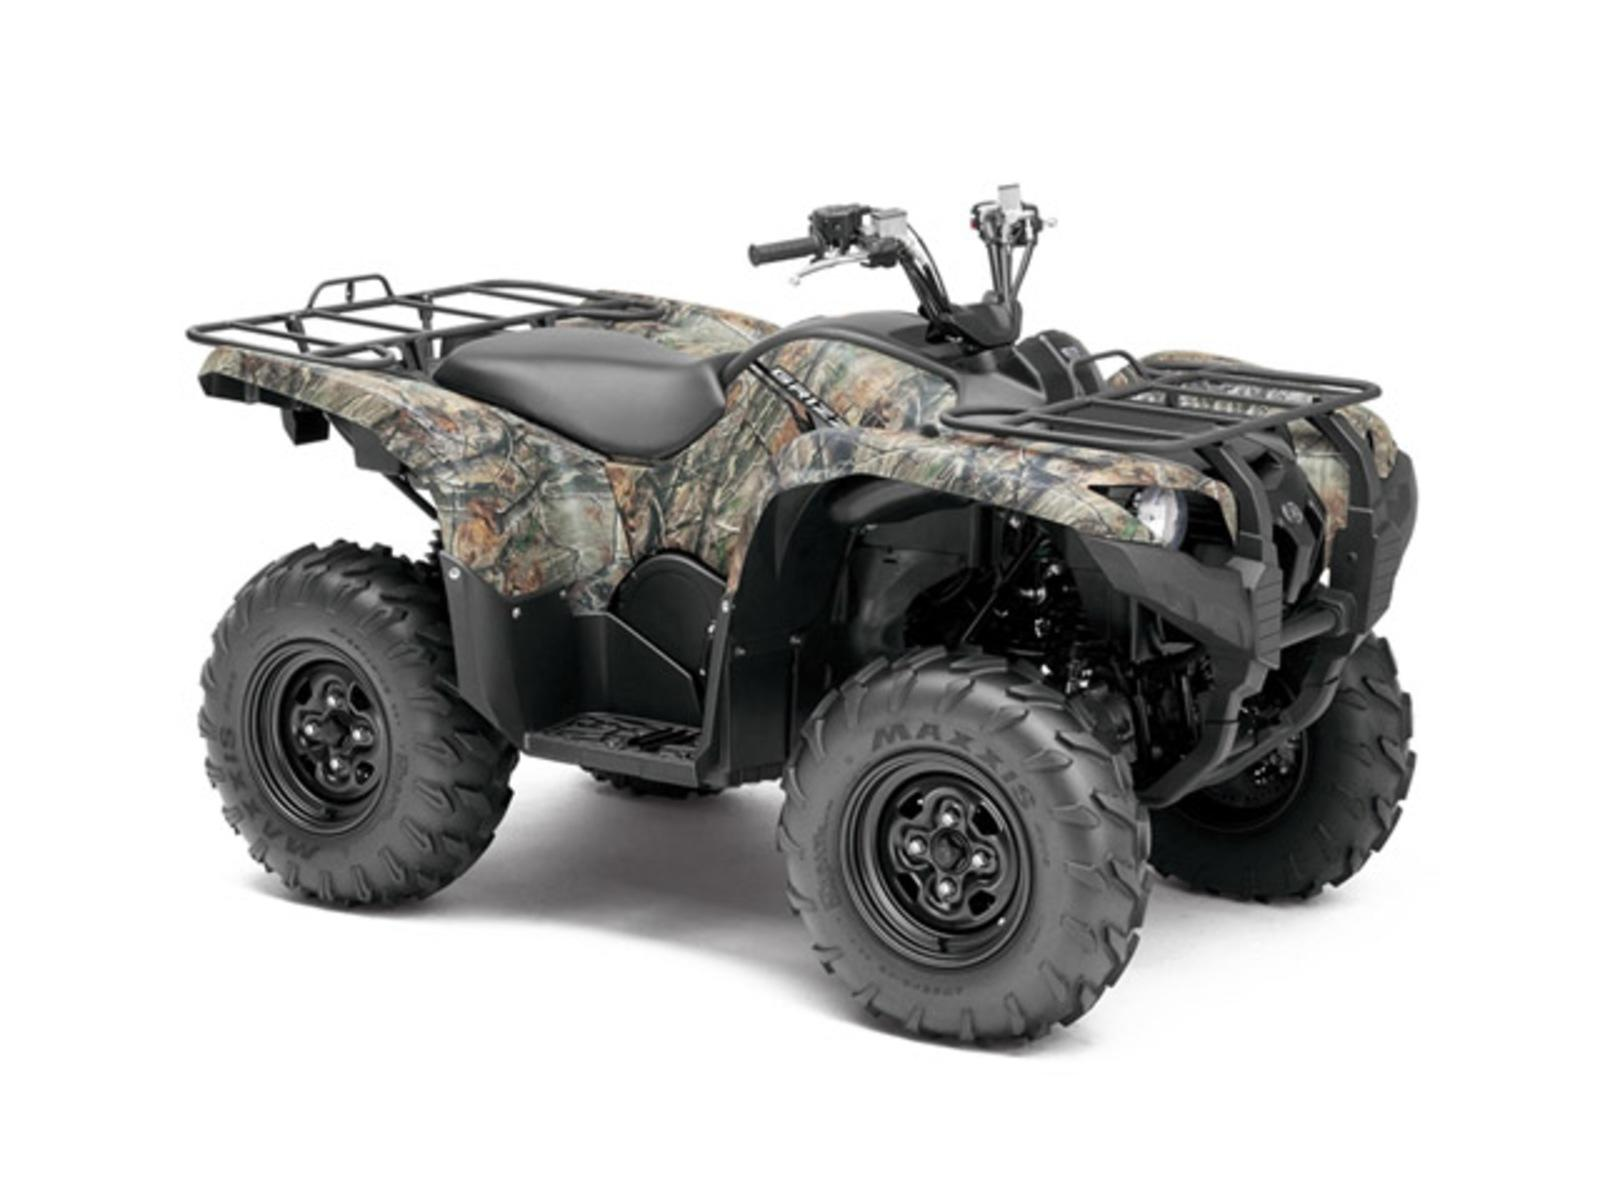 2014 Yamaha Grizzly 550 Fi Review